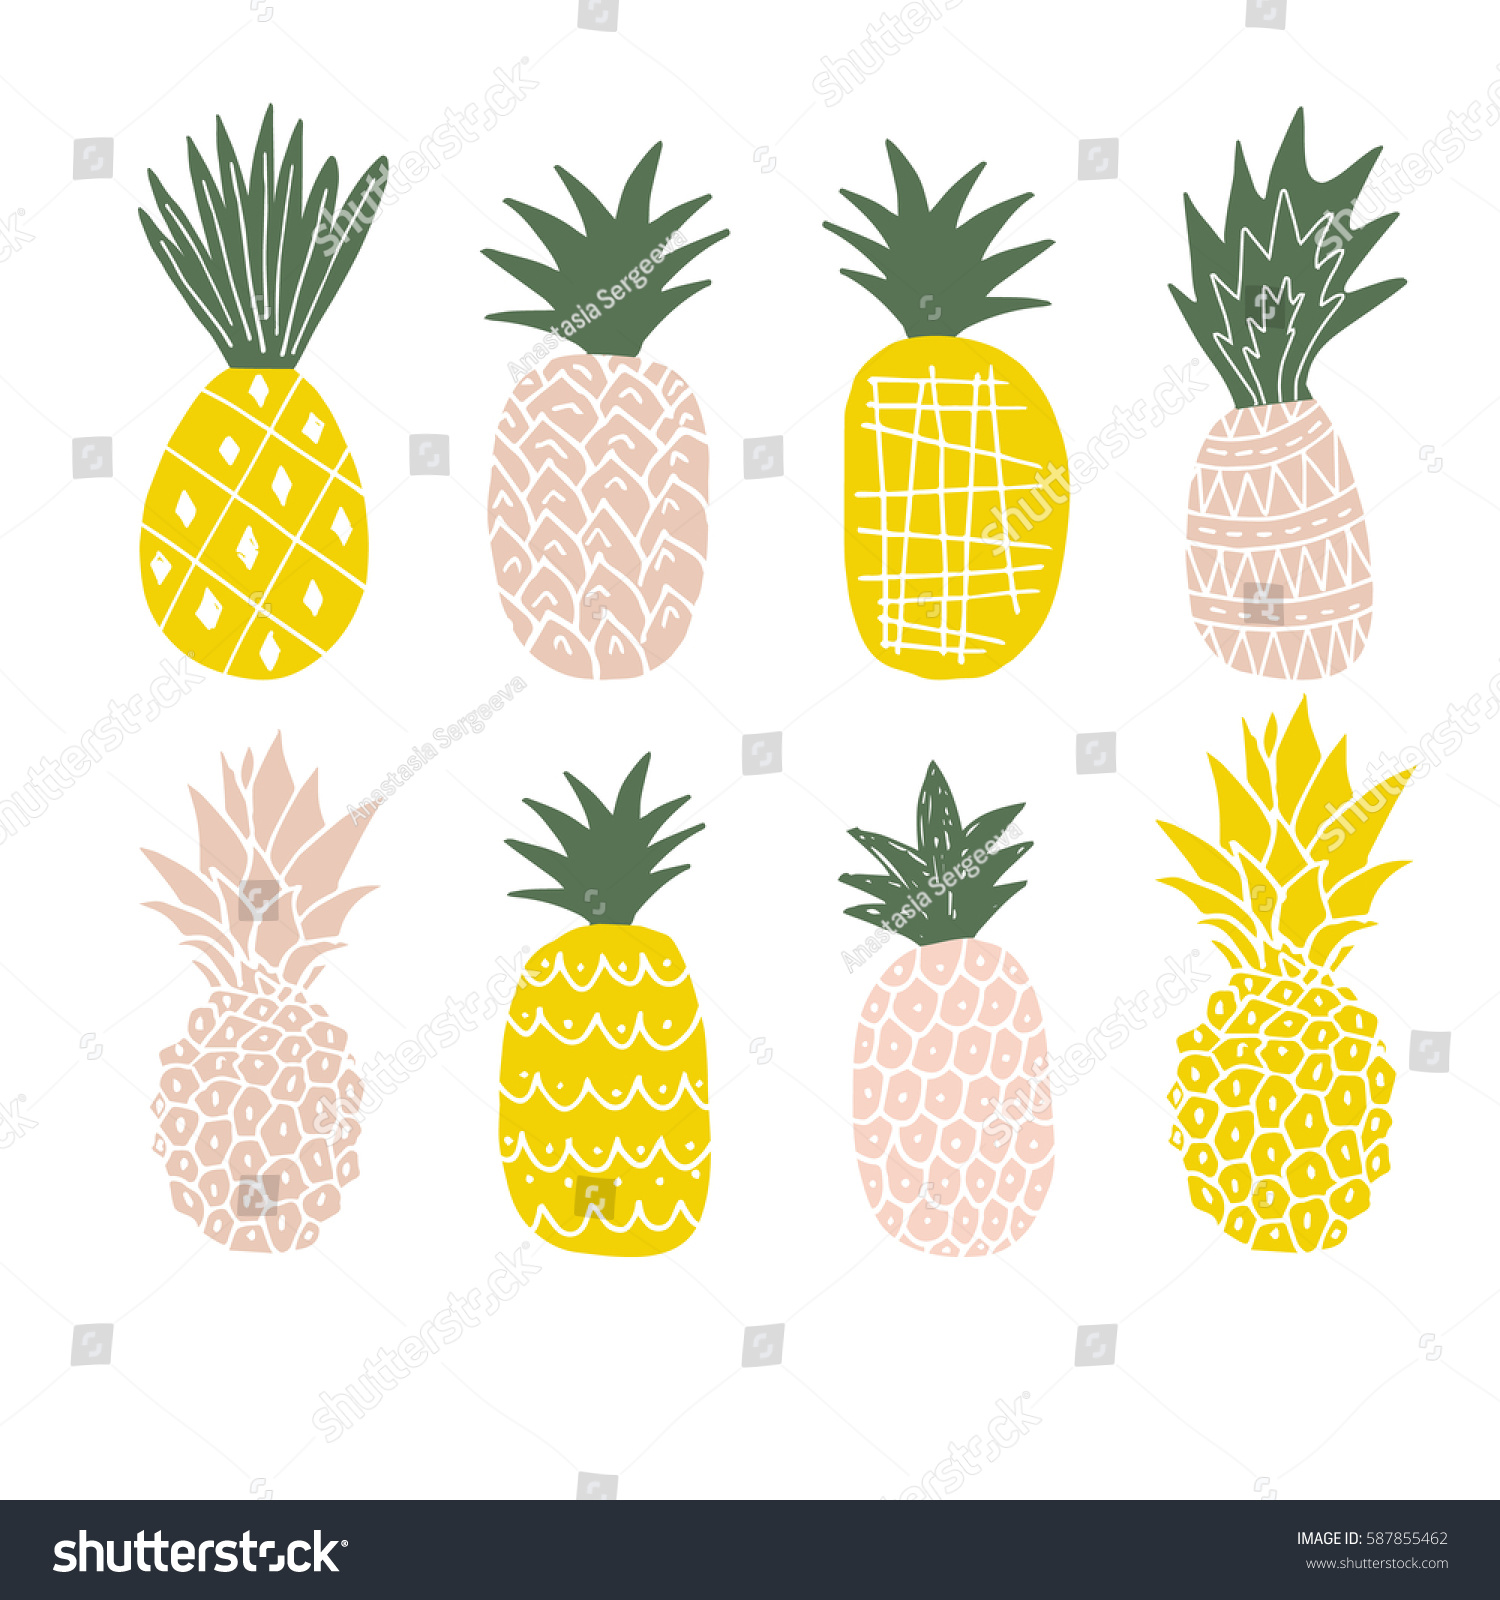 cute pineapple clipart. set of cute pineapples. pineapple clipart